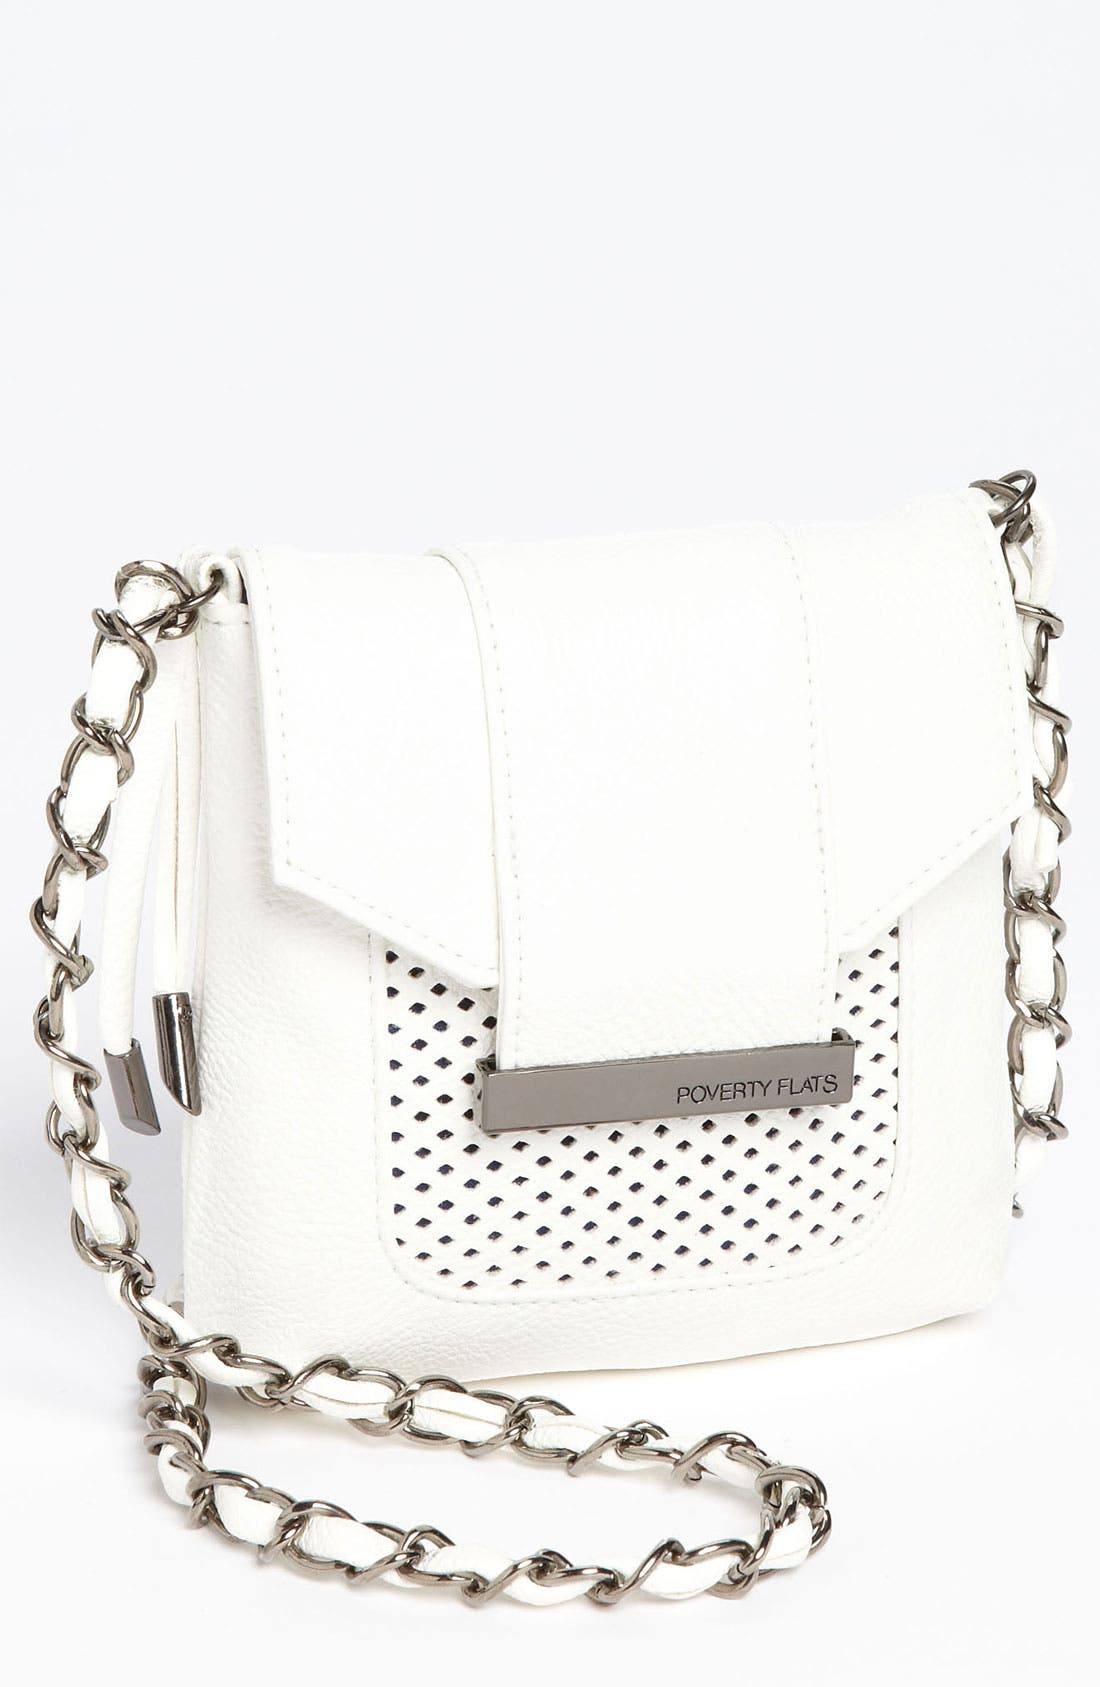 Alternate Image 1 Selected - POVERTY FLATS by rian 'Mesh Detail - Mini' Crossbody Bag